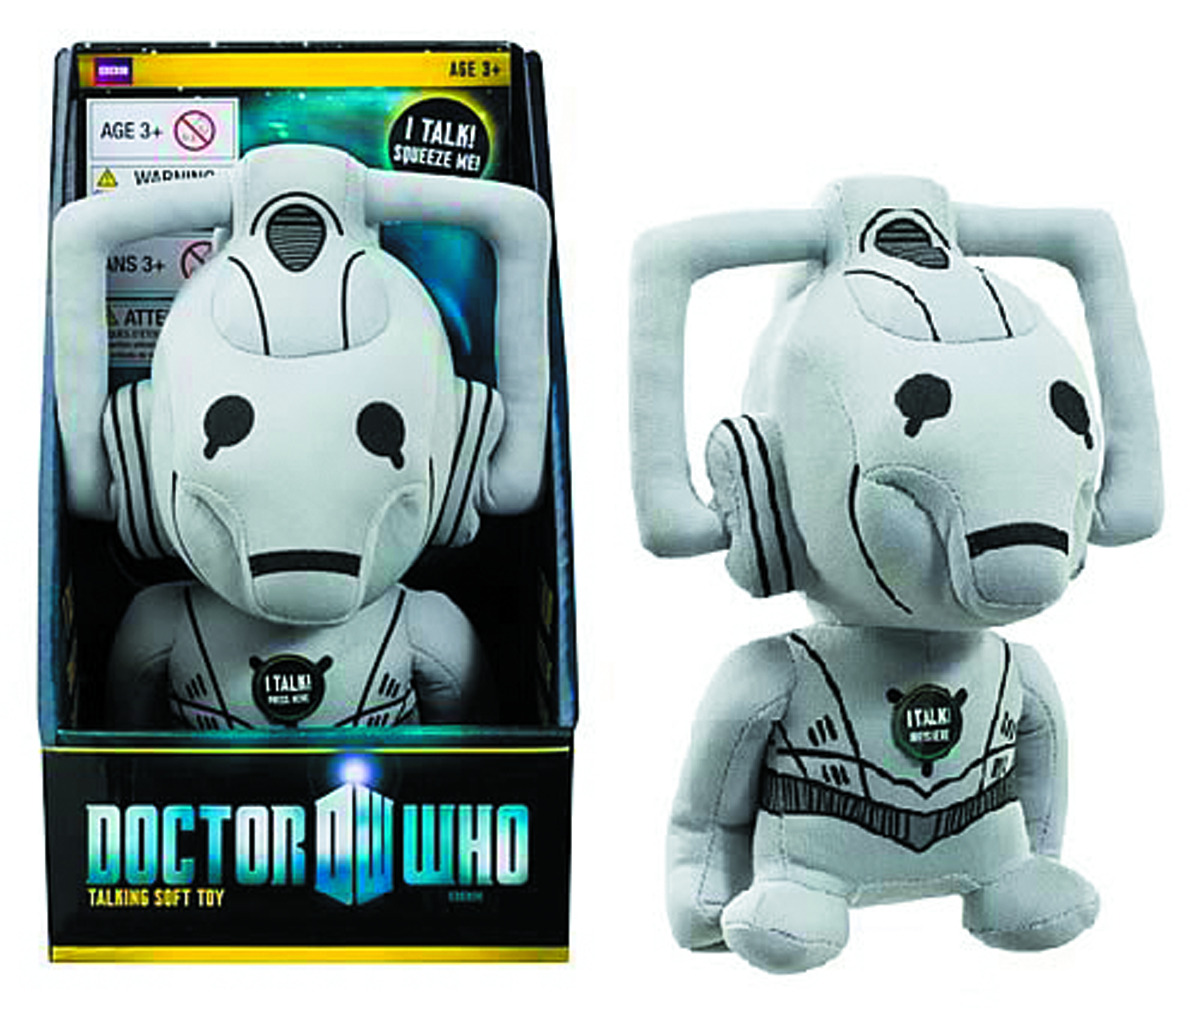 DOCTOR WHO MEDIUM TALKING CYBERMAN PLUSH